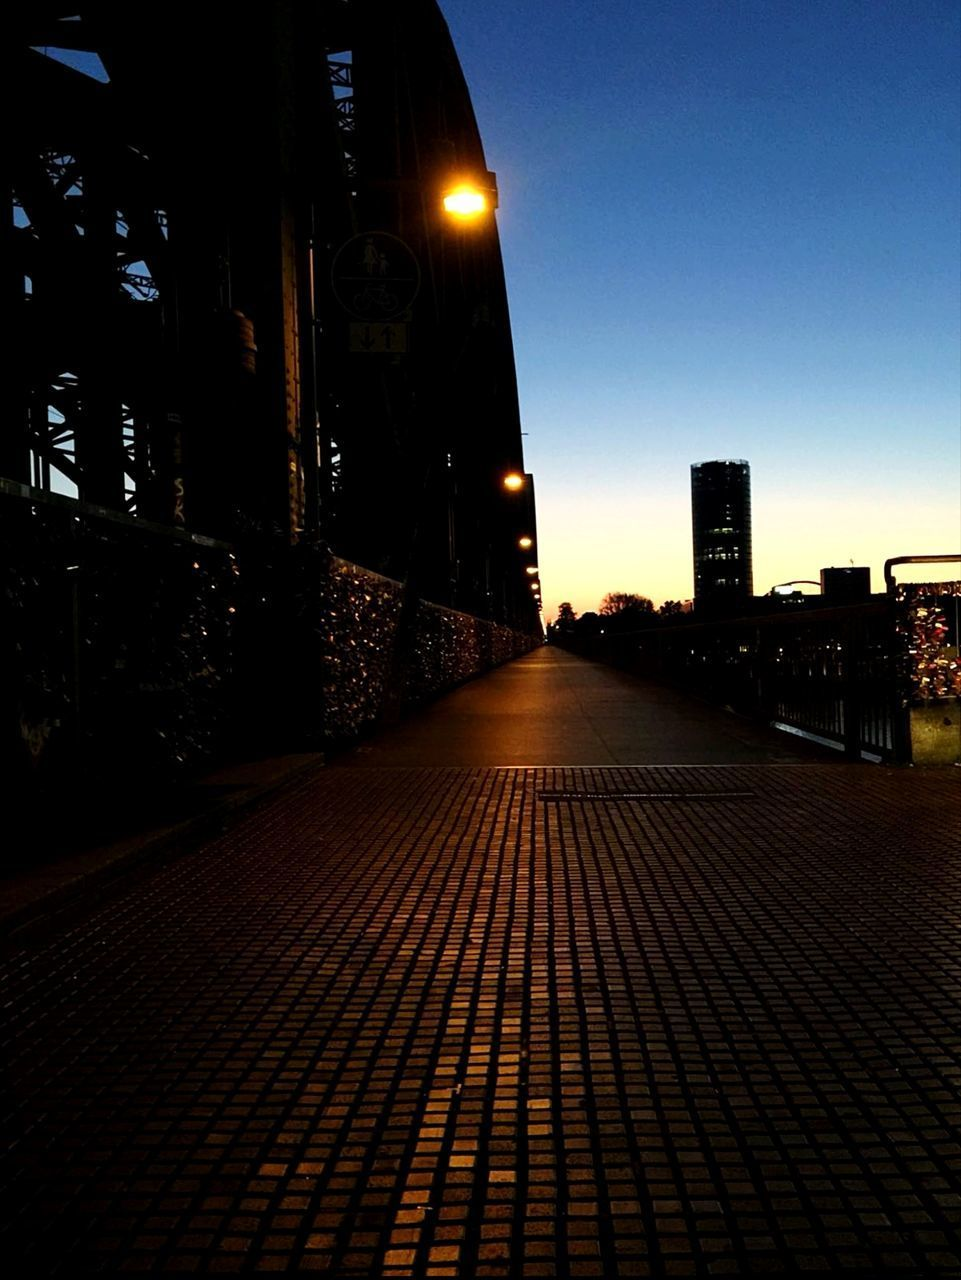 architecture, building exterior, city, built structure, street, illuminated, night, sky, building, cobblestone, no people, footpath, nature, direction, the way forward, street light, outdoors, lighting equipment, city life, sunset, paving stone